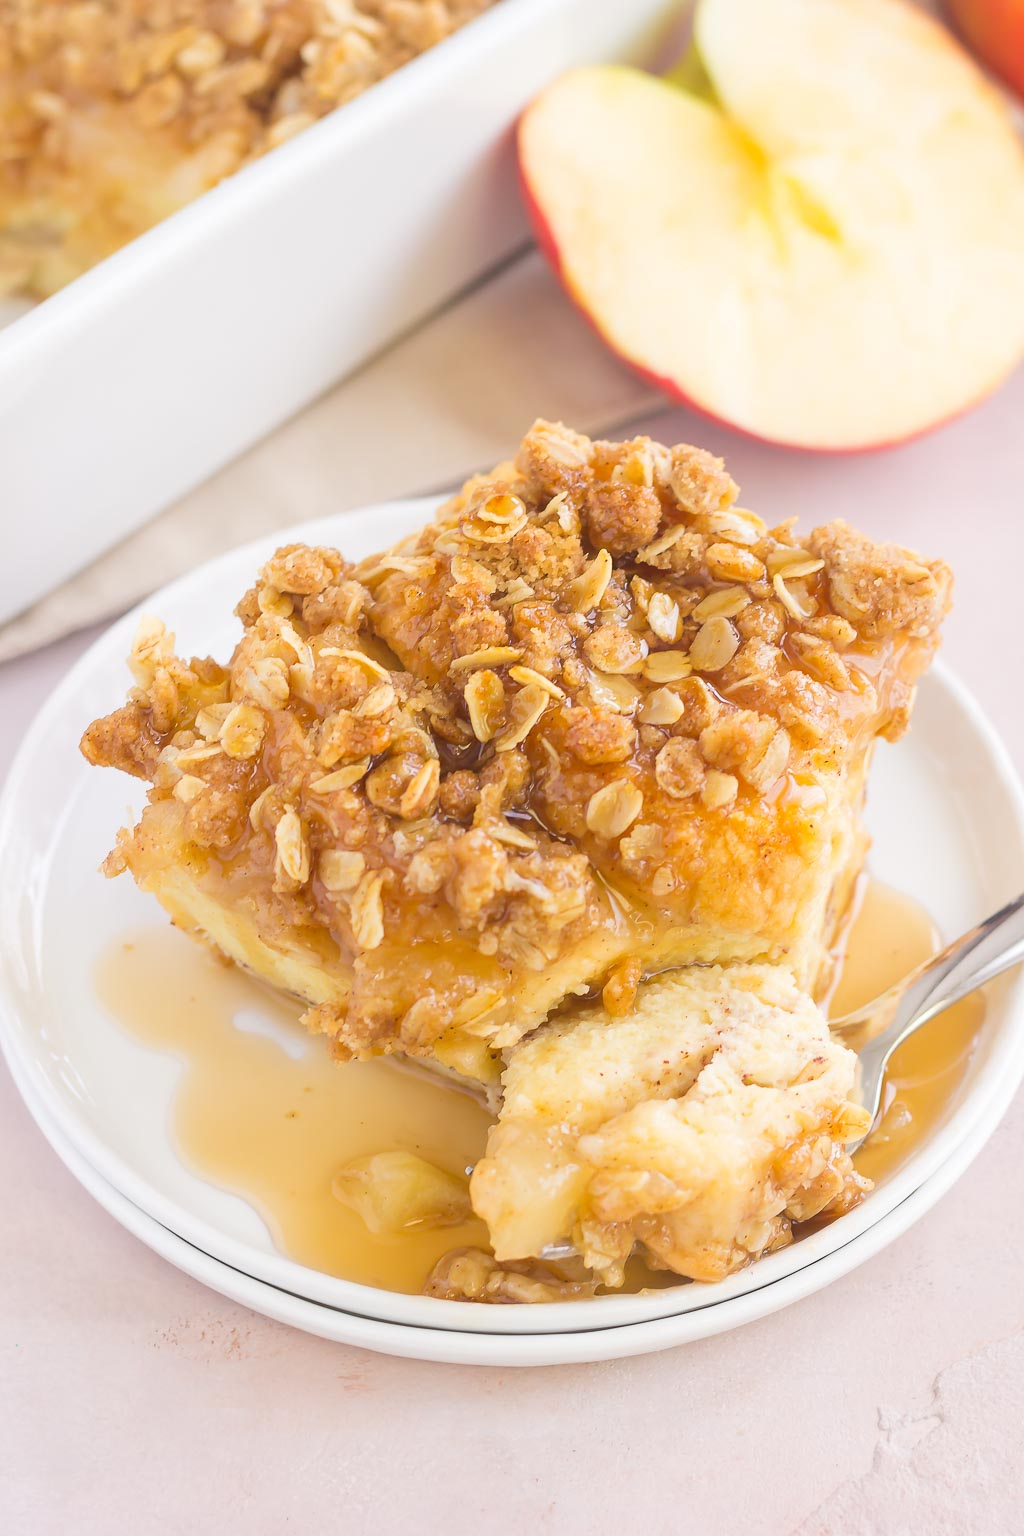 Apple Bread Recipe Streusel Topping